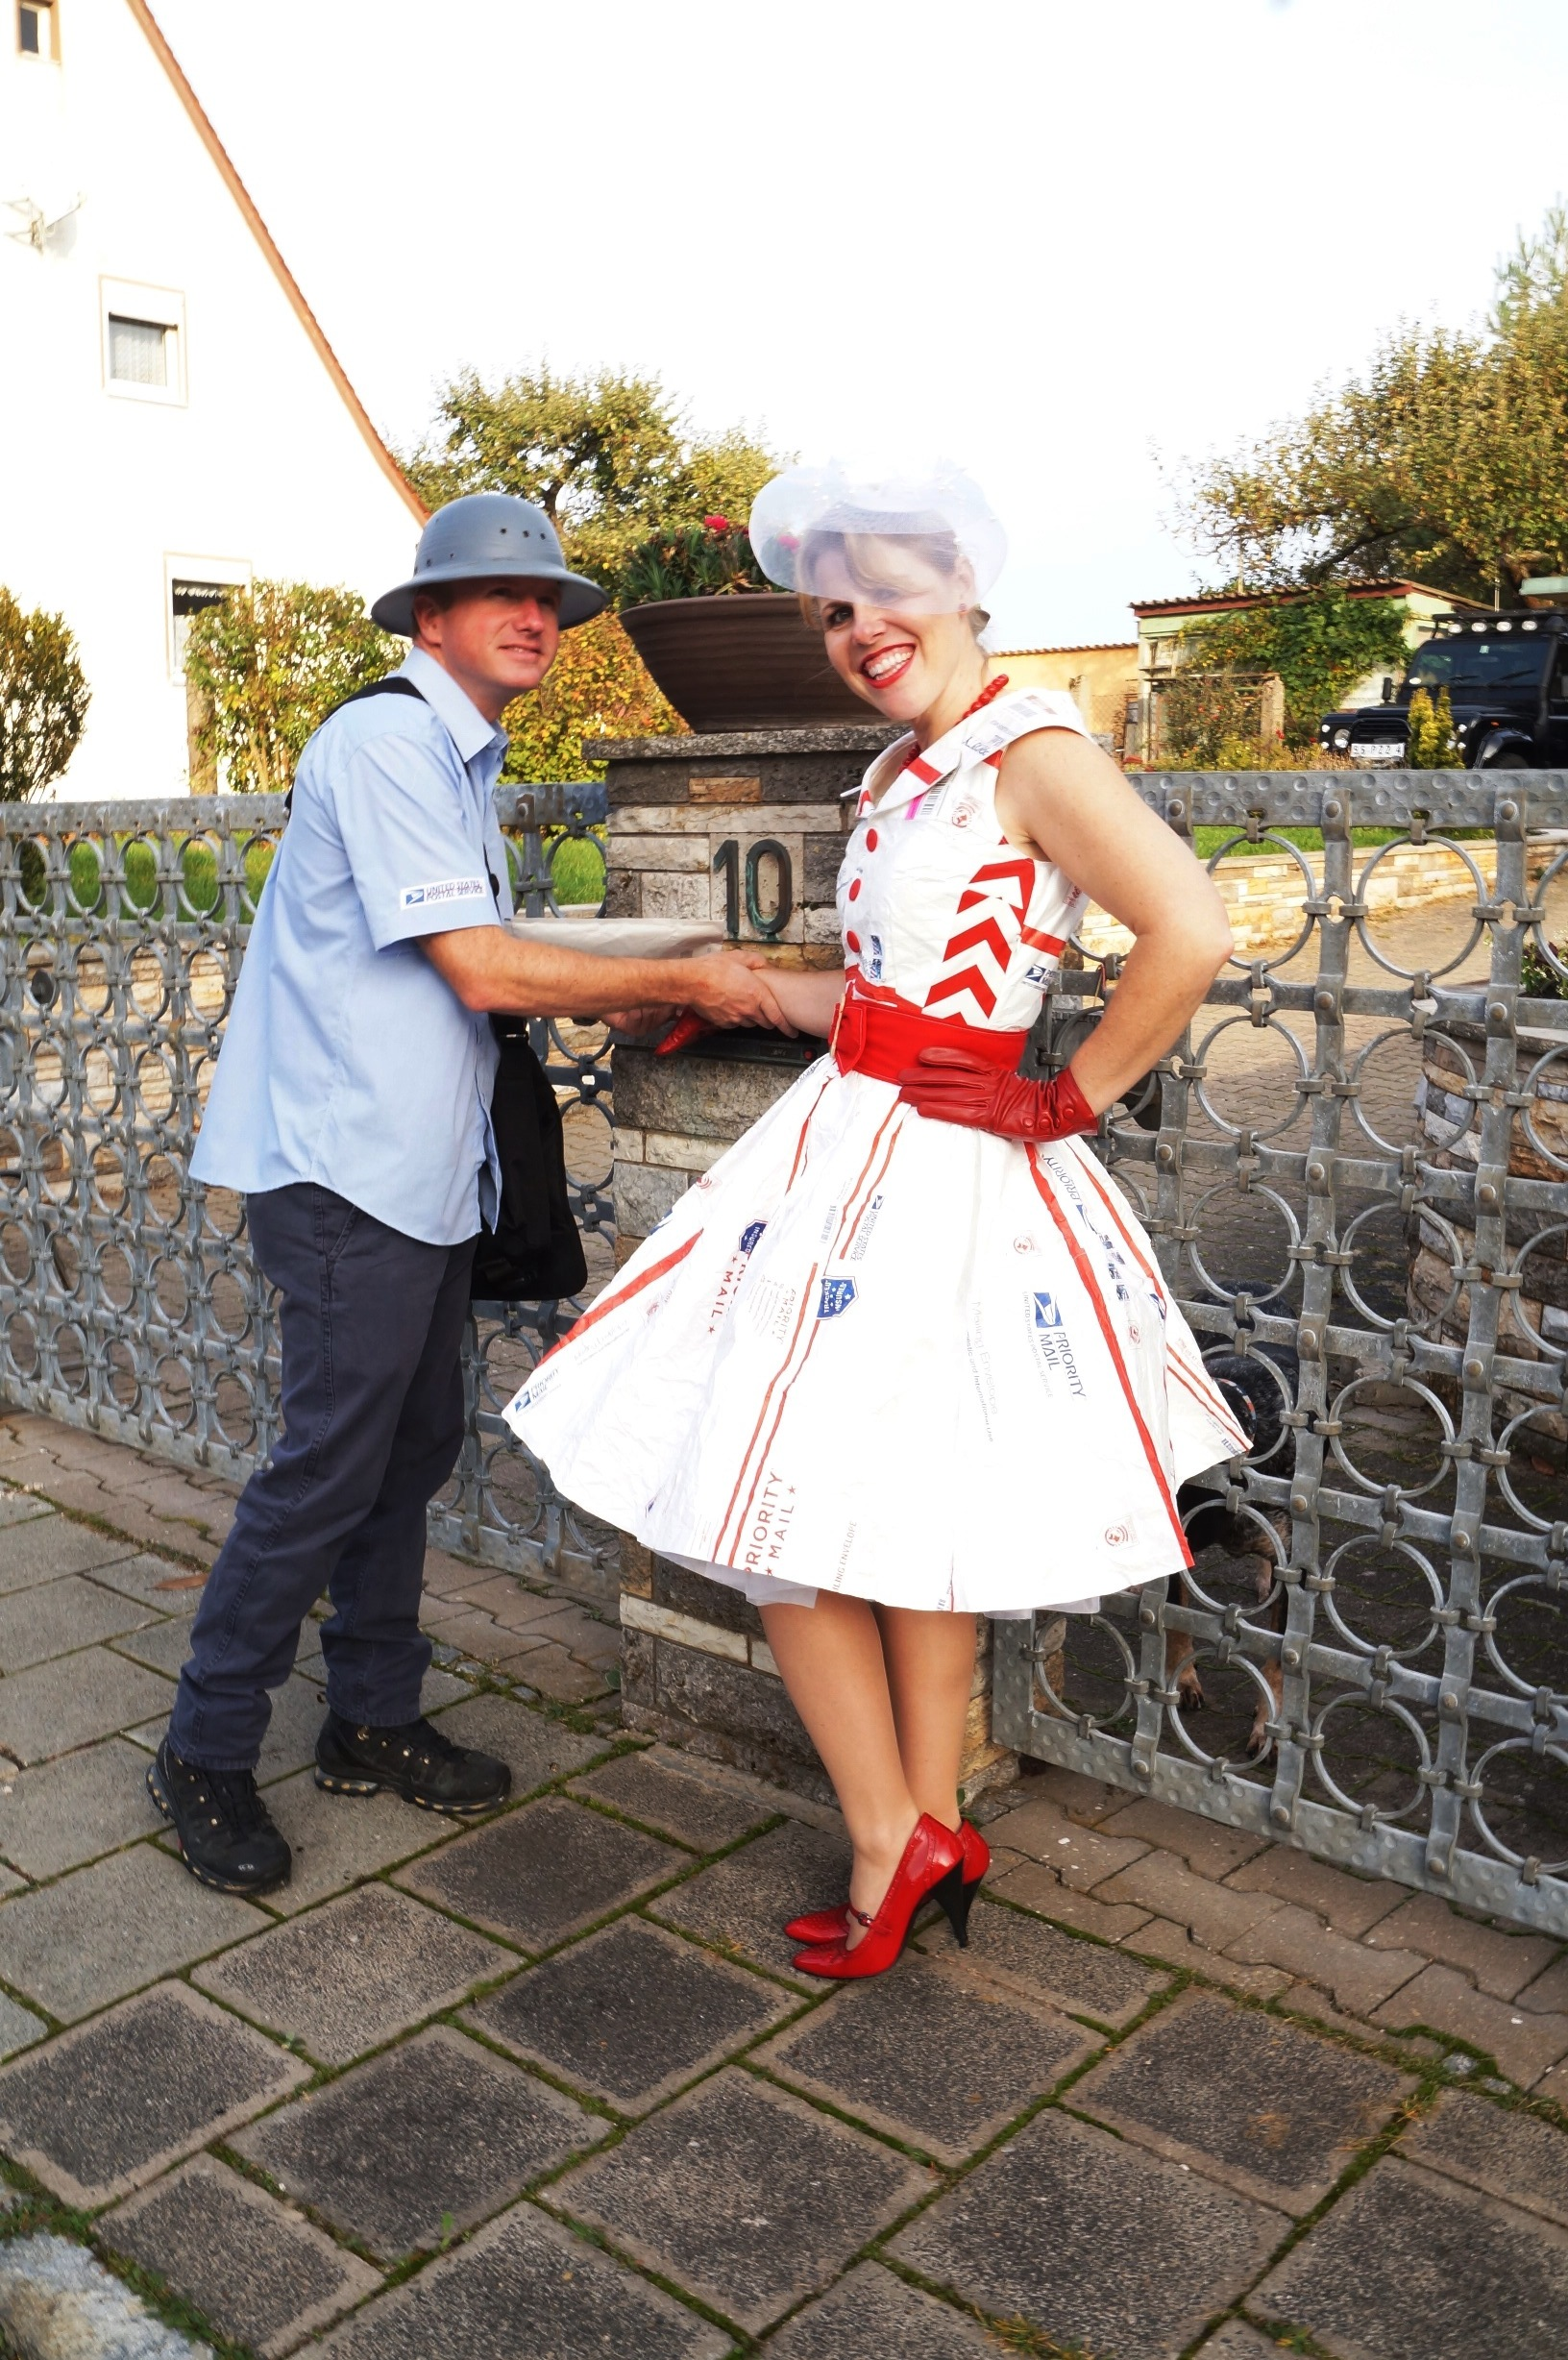 Halloween fun mail order bride and mail man dsc06170 sciox Choice Image